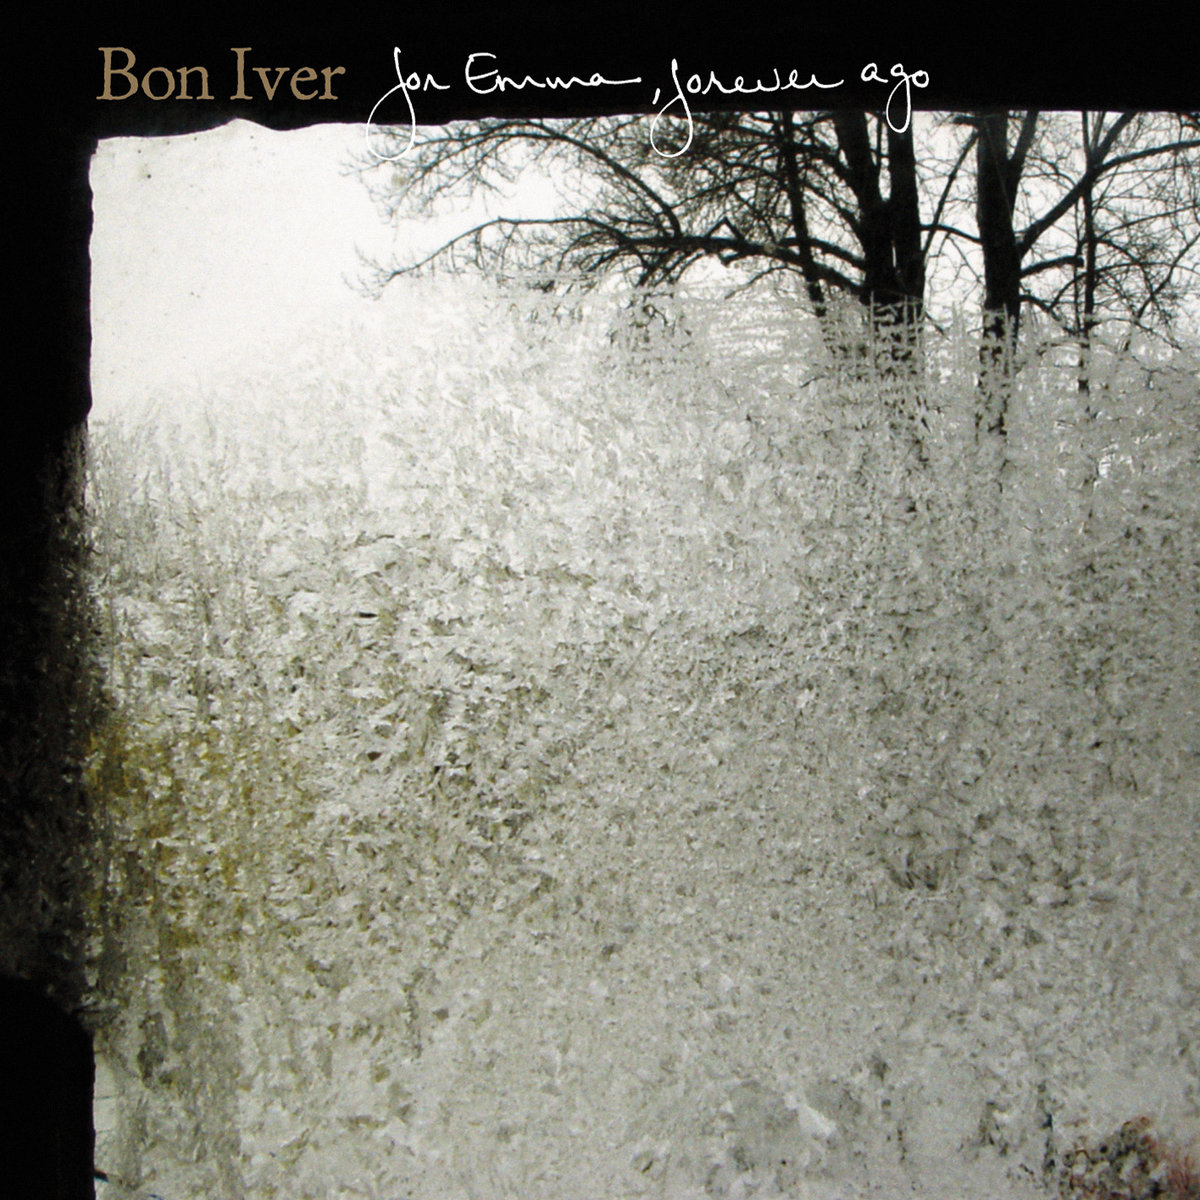 bon iver for emma Top 50 Songs of 2007